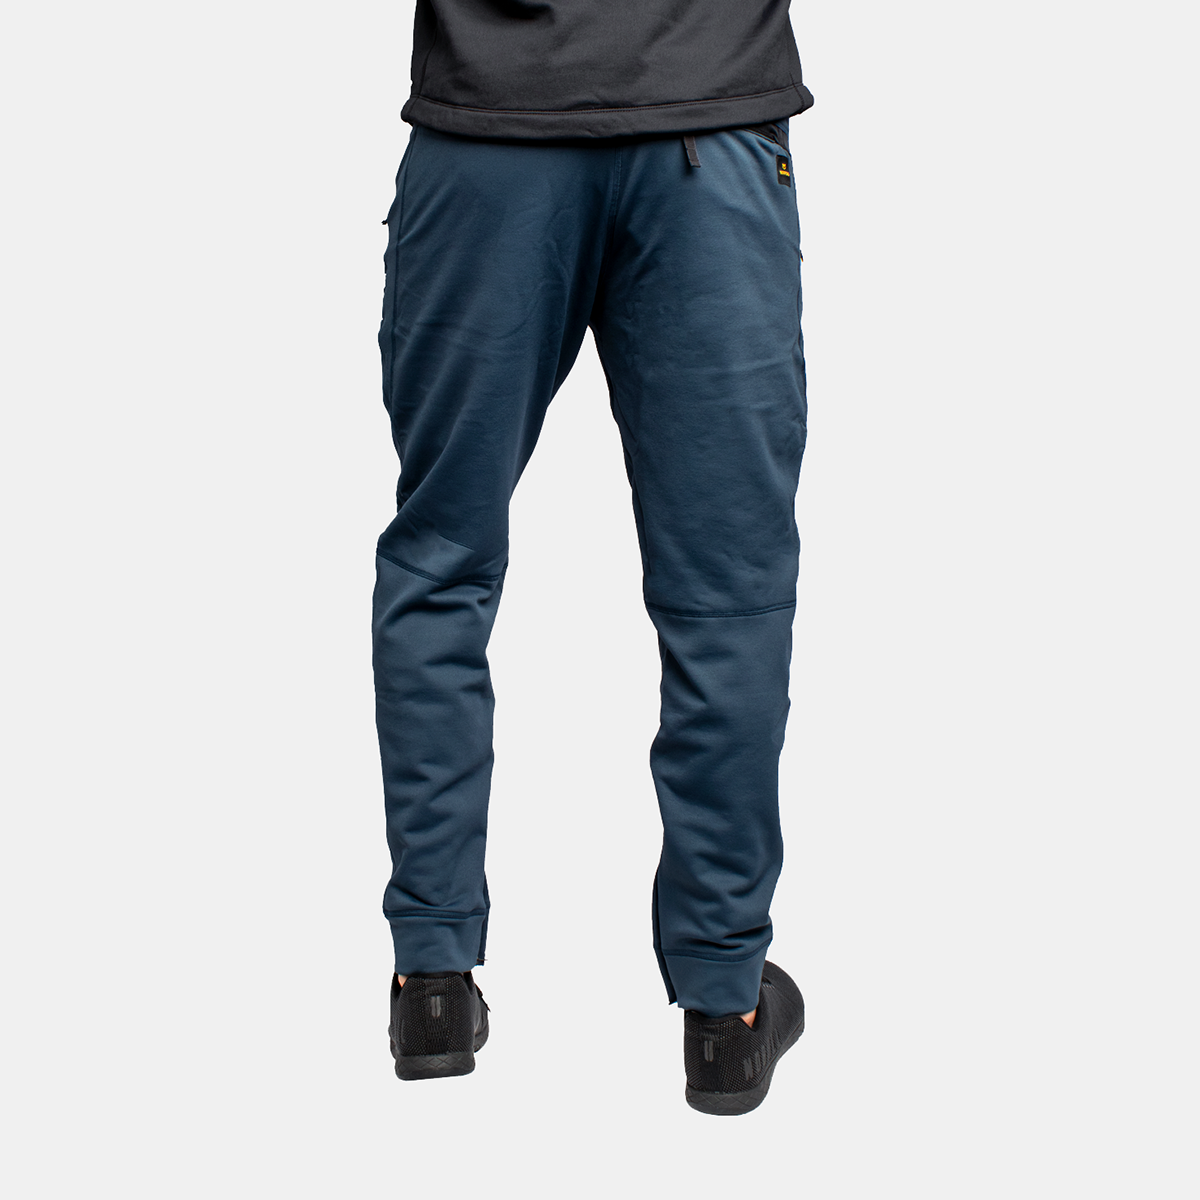 Men's Performance Tech Pant 2.0 - Navy